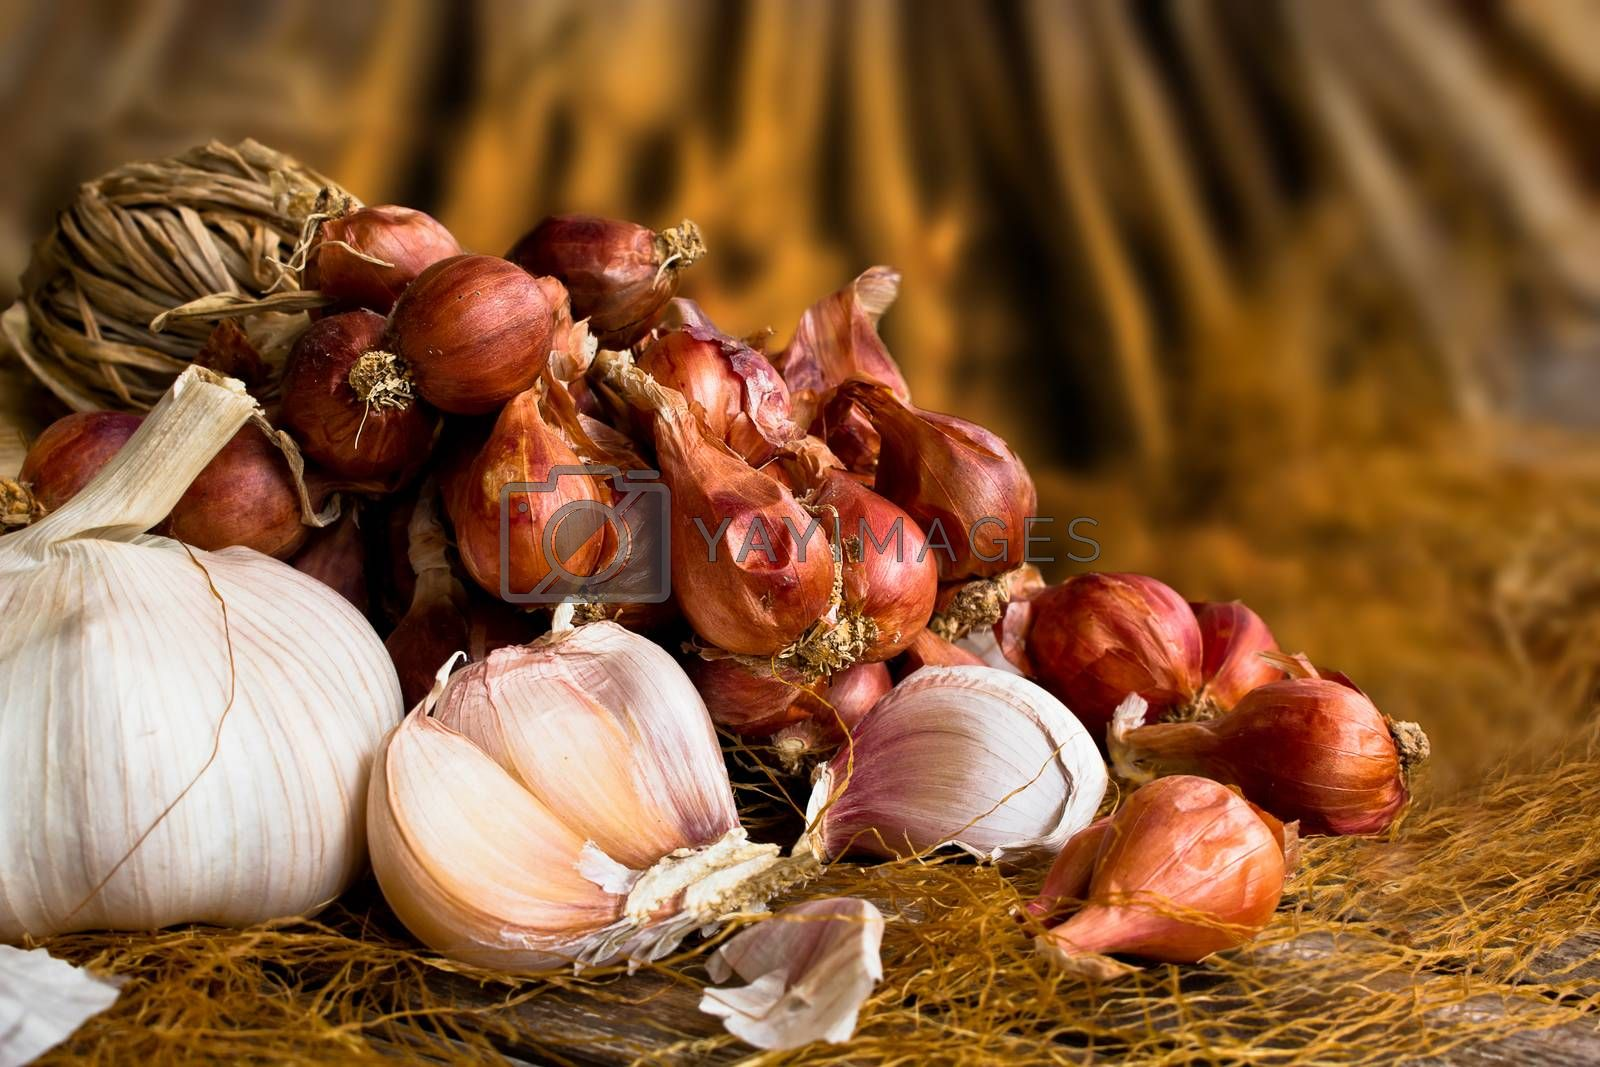 Vintage garlic and onion in still life style